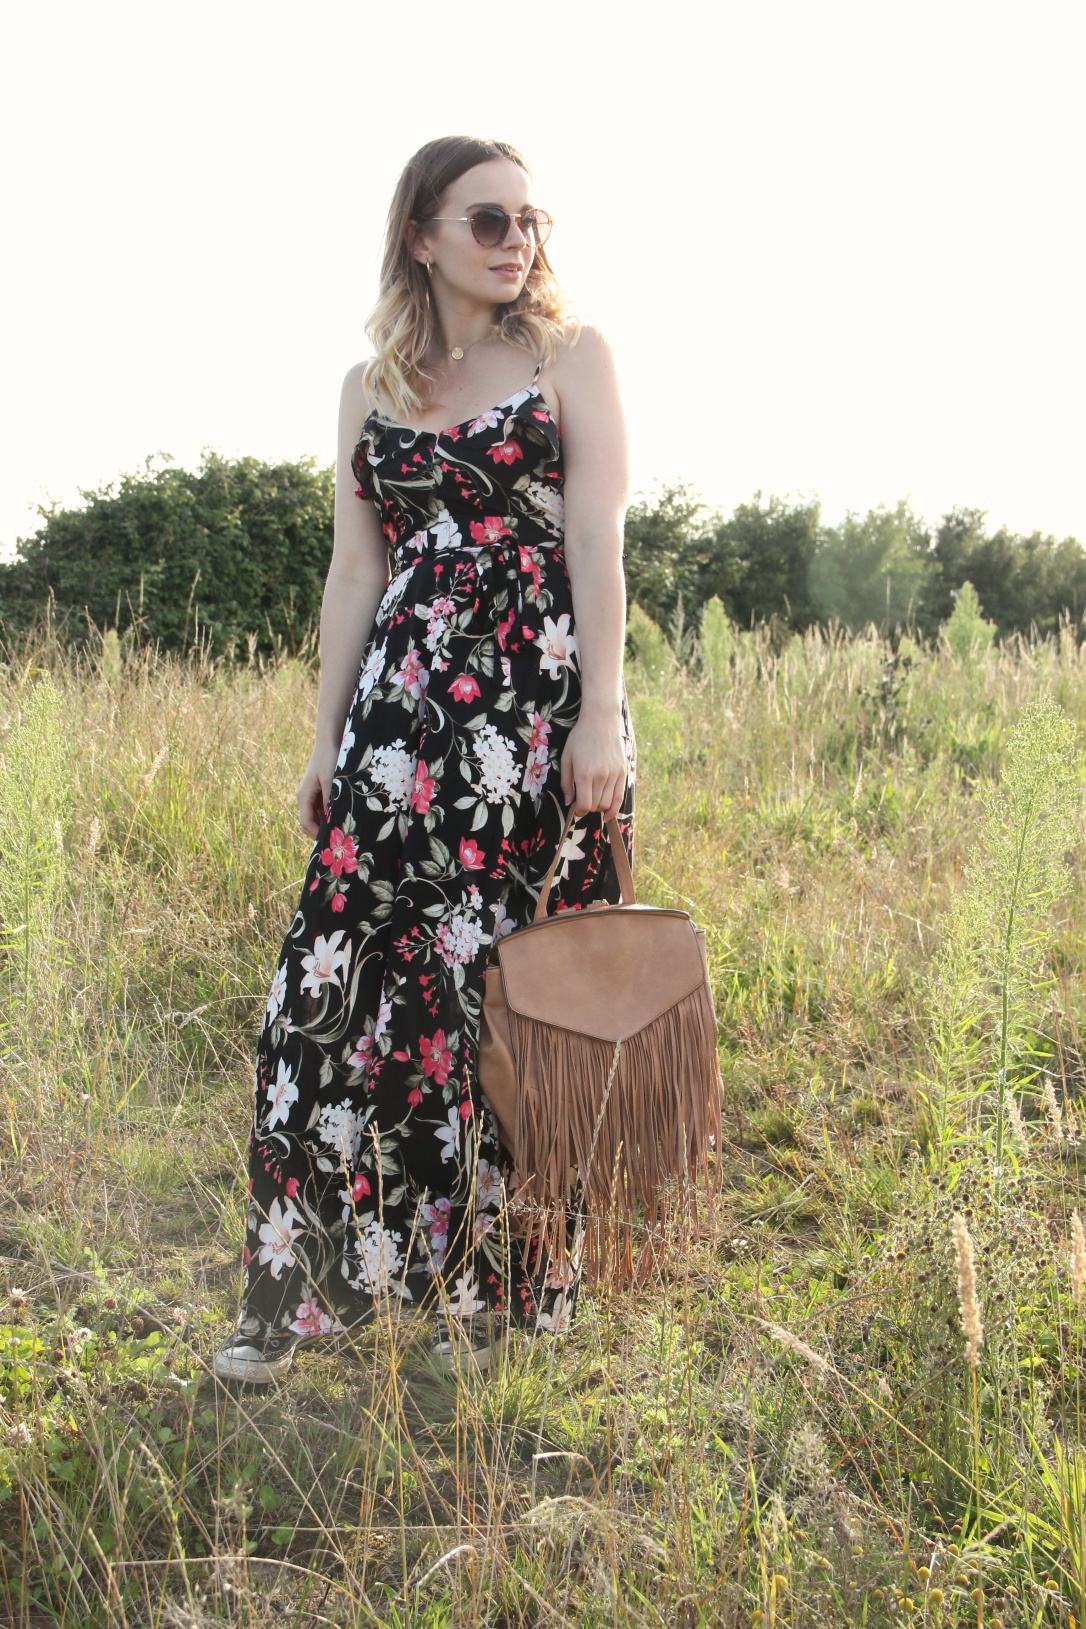 Floral maxi dress and rucksack